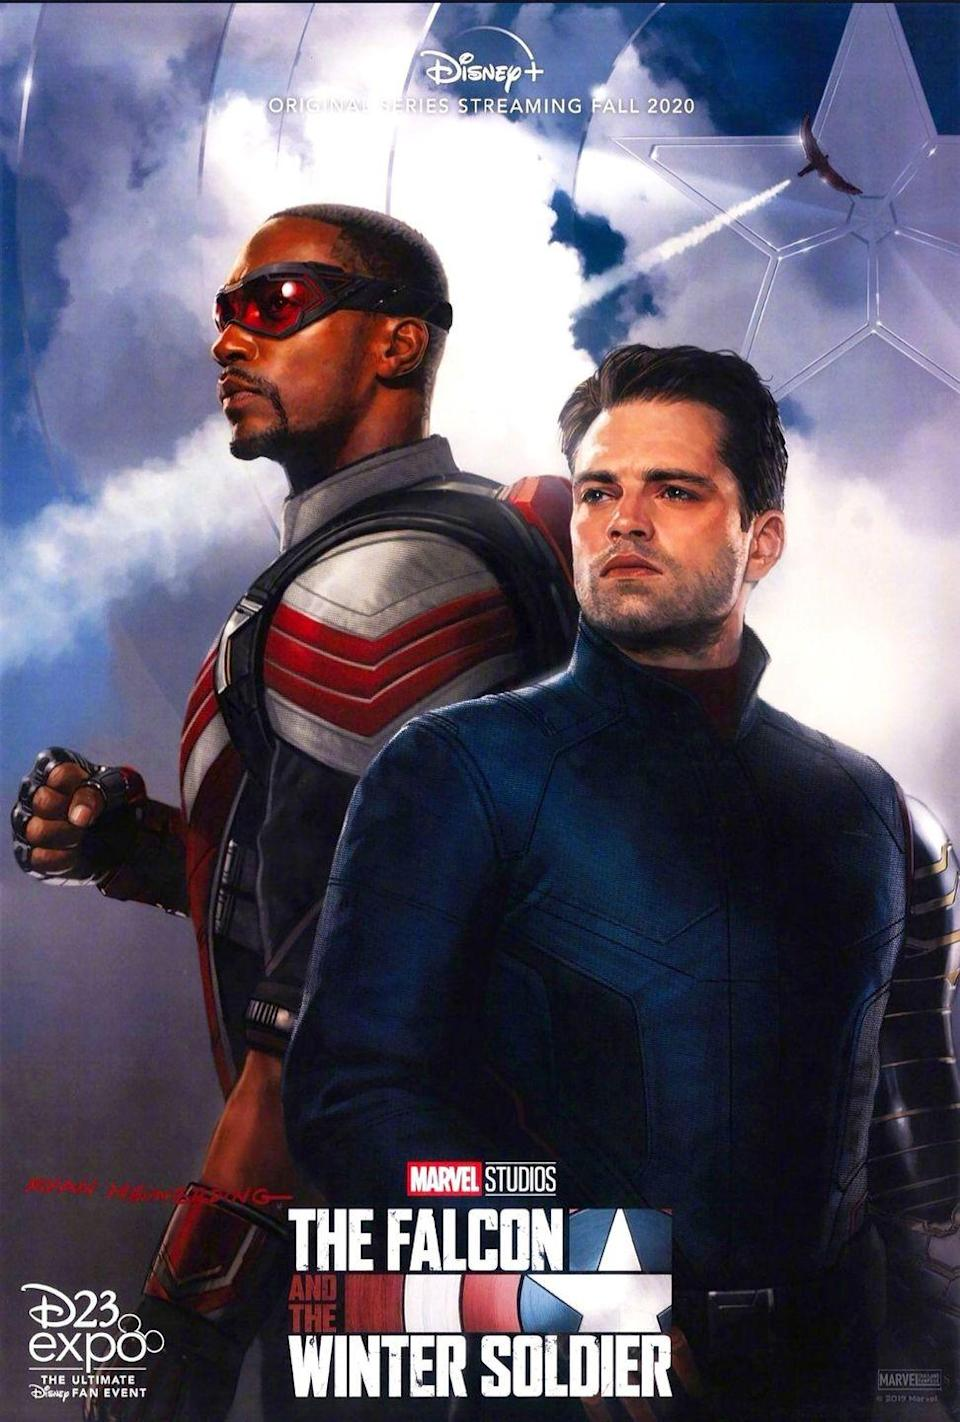 "<p>Picking up right where <em>Avengers: Endgame </em>left off, <em><a href=""https://www.menshealth.com/entertainment/a28134716/the-falcon-and-the-winter-soldier-disney-plus-cast-details/"" rel=""nofollow noopener"" target=""_blank"" data-ylk=""slk:The Falcon and The Winter Soldier"" class=""link rapid-noclick-resp"">The Falcon and The Winter Soldier </a></em>will follow <em>Men's Health </em>cover stars <a href=""https://www.menshealth.com/entertainment/a30183556/sebastian-stan-winter-soldier-interview/"" rel=""nofollow noopener"" target=""_blank"" data-ylk=""slk:Sebastian Stan"" class=""link rapid-noclick-resp"">Sebastian Stan</a> and <a href=""https://www.menshealth.com/entertainment/a28120934/anthony-mackie-falcon-captain-america-marvel/"" rel=""nofollow noopener"" target=""_blank"" data-ylk=""slk:Anthony Mackie"" class=""link rapid-noclick-resp"">Anthony Mackie</a> as their titular characters navigate the present of the MCU. The series is already filming, and will see villain Baron Zemo (Daniel Brühl) and Agent Sharon Carter (Emily VanCamp) return; it's the <em>Captain America </em>(sans Chris Evans) sequel that we all know we wanted and needed. </p>"